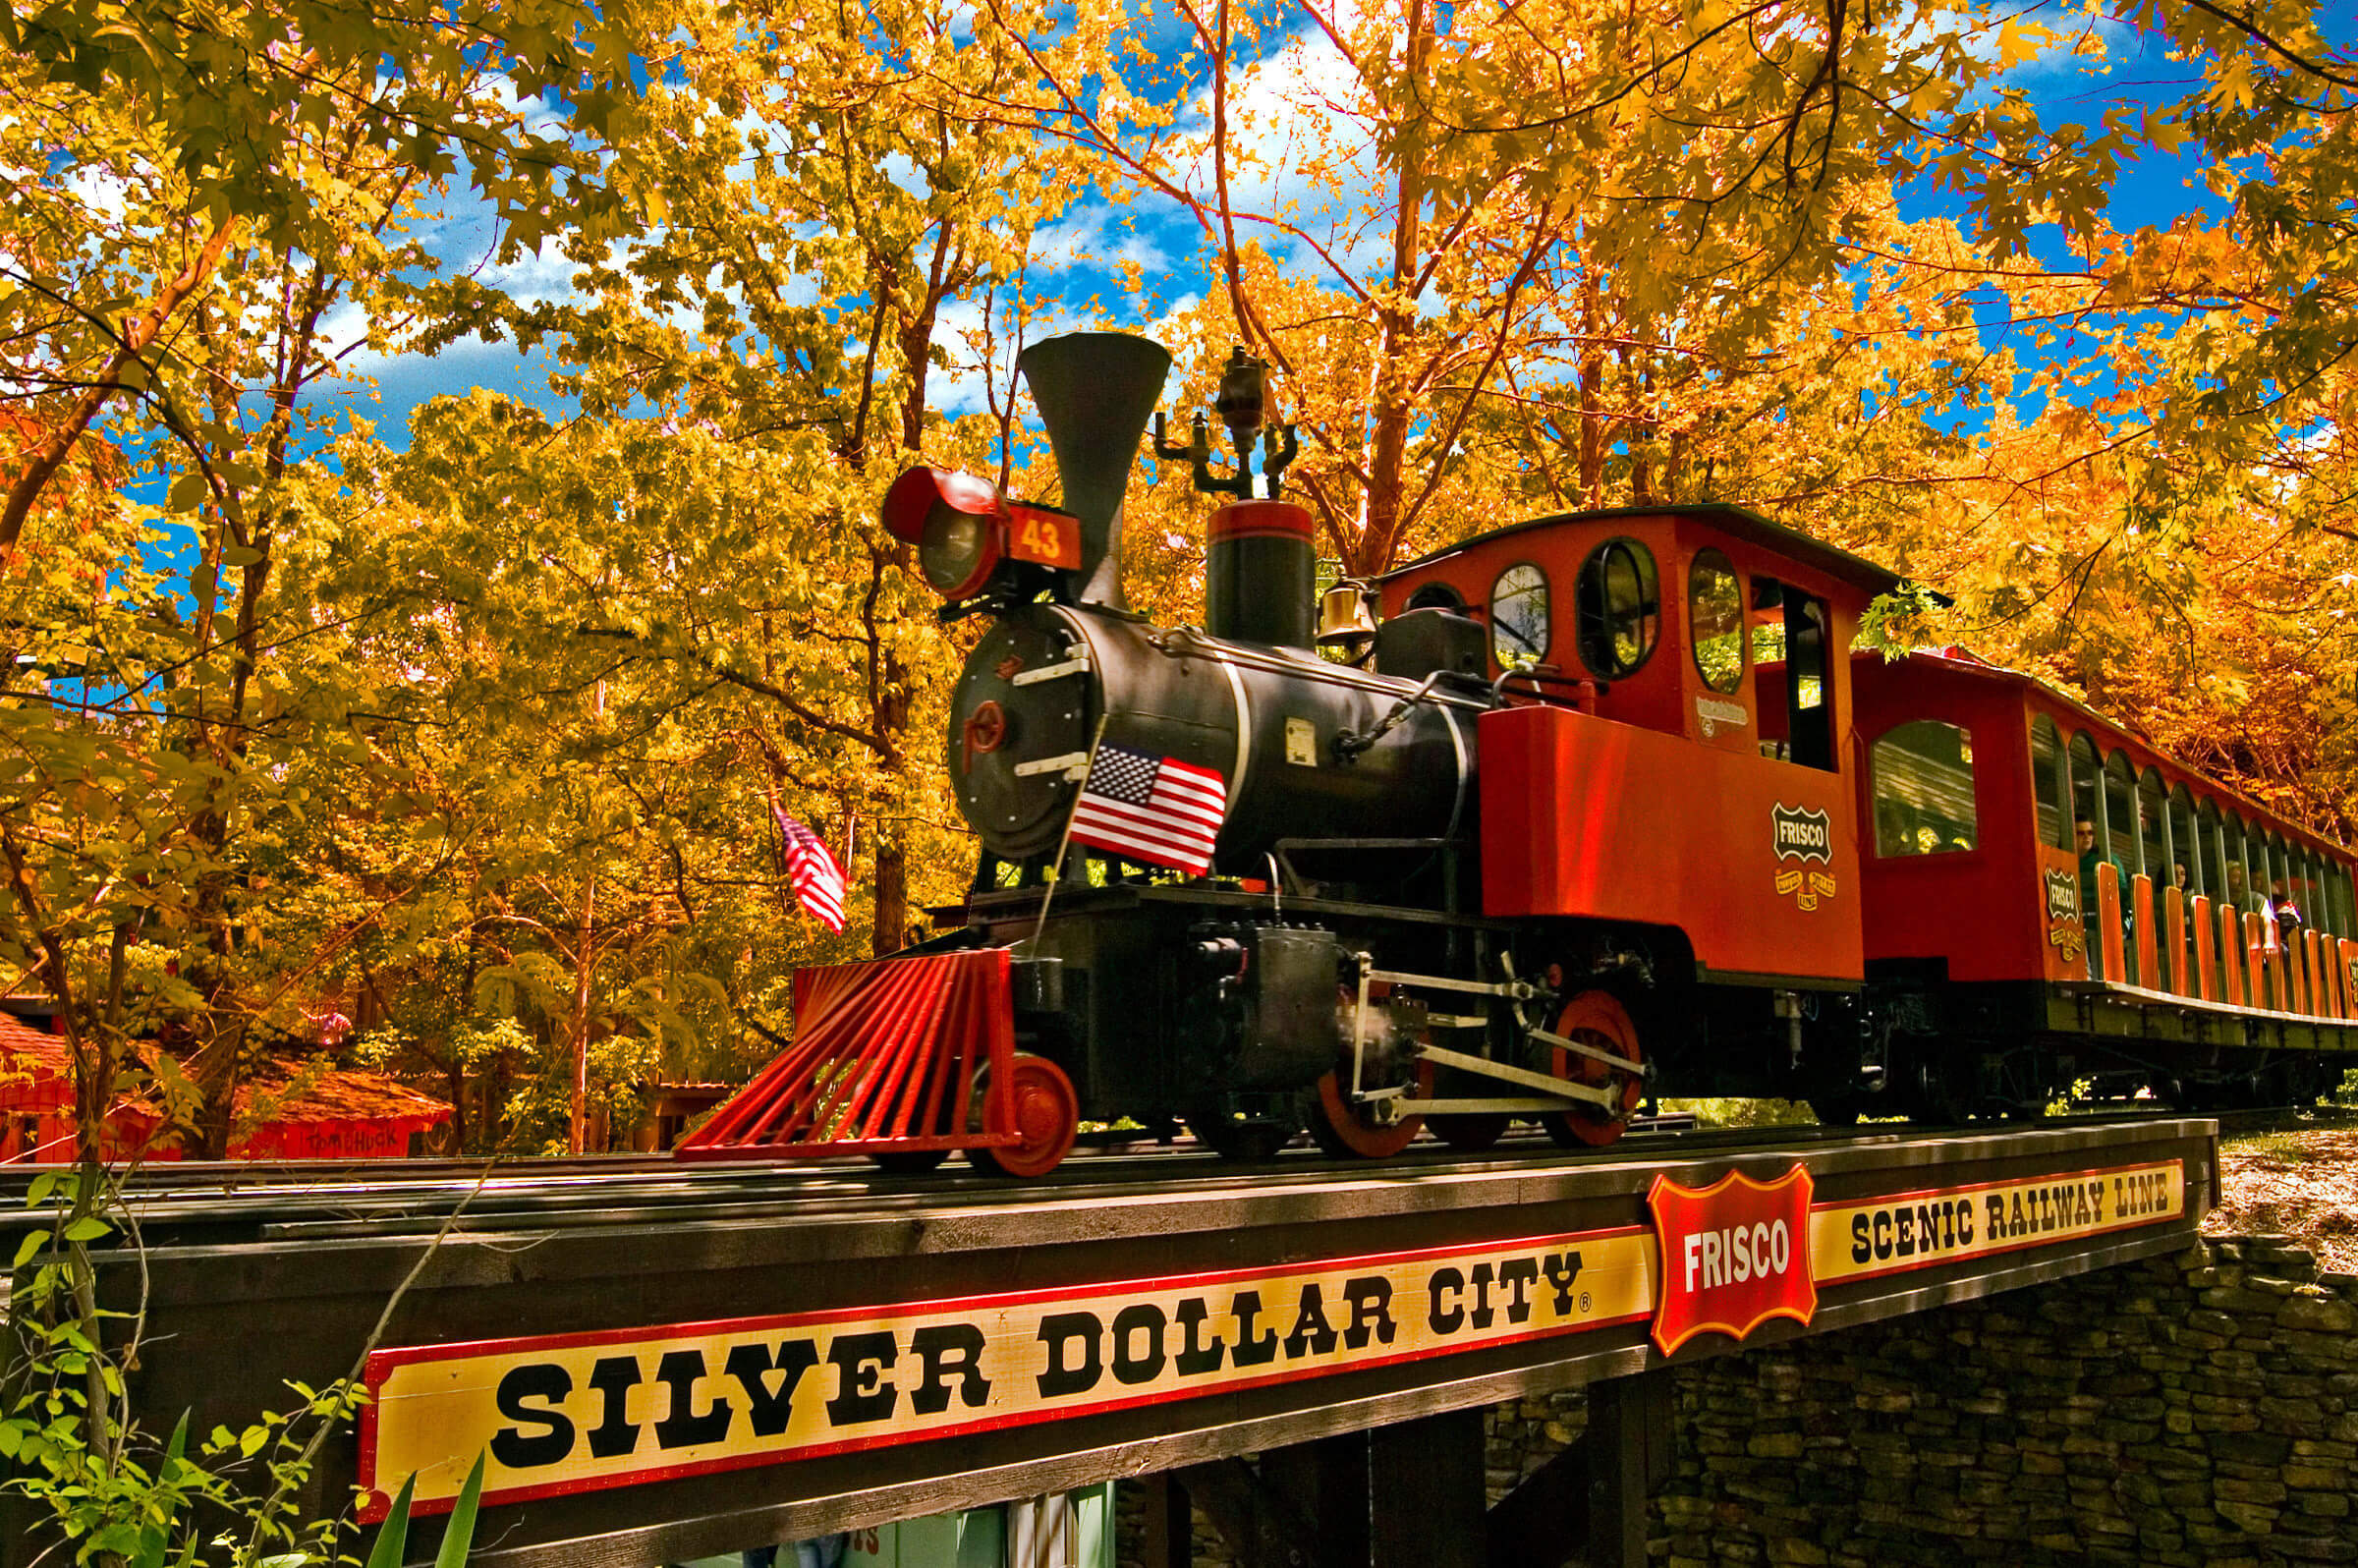 Silver Dollar City train ride in Branson | resorts in Missouri near Branson | Westgate Branson Woods Resort